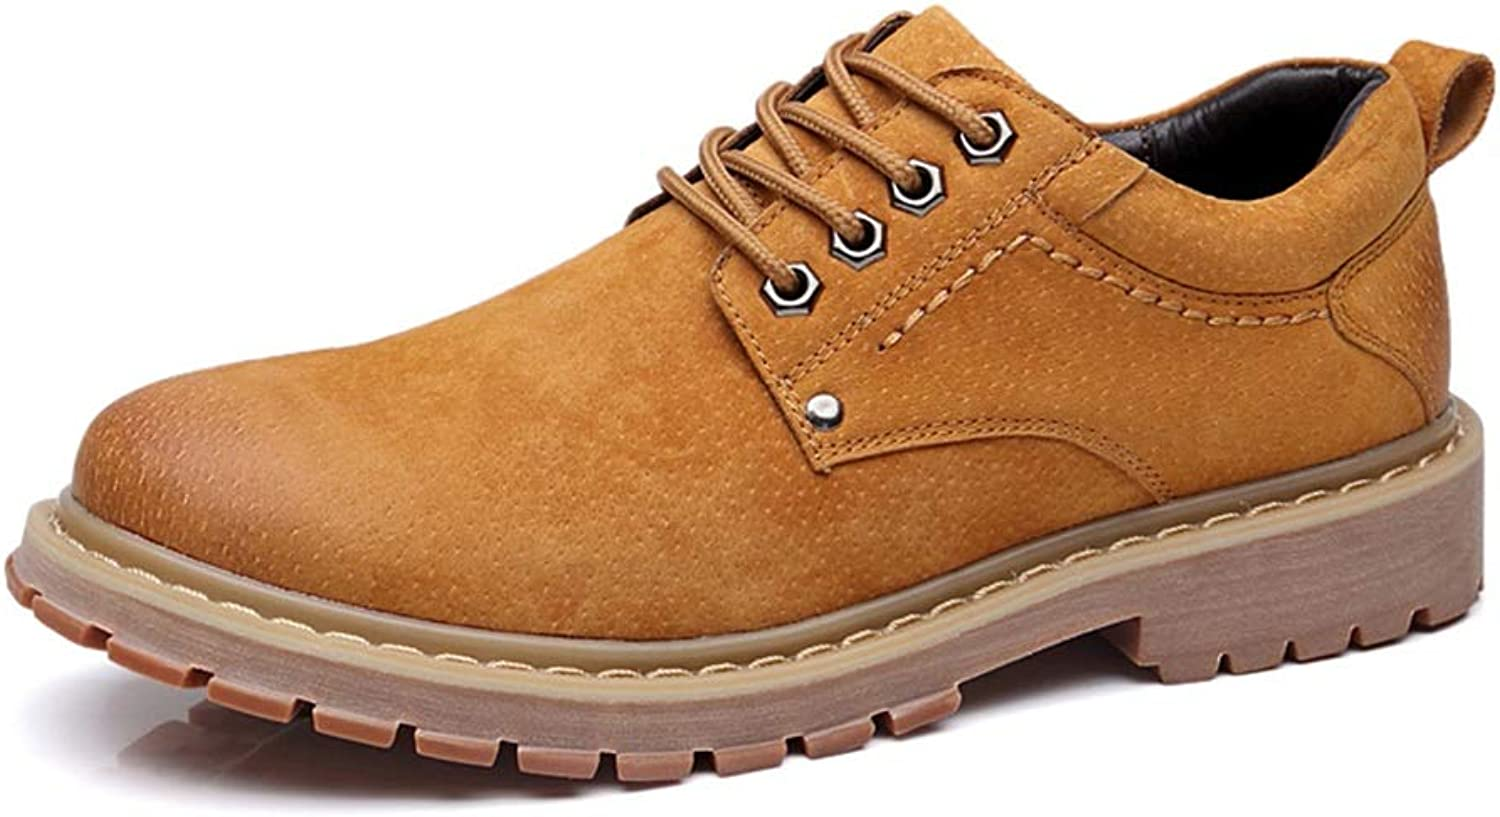 CHENDX shoes, Men's Vintage Round Toe Lace Up Oxfords Genuine Leather Low Heel Work Boots (color   Brown, Size   6.5 UK)